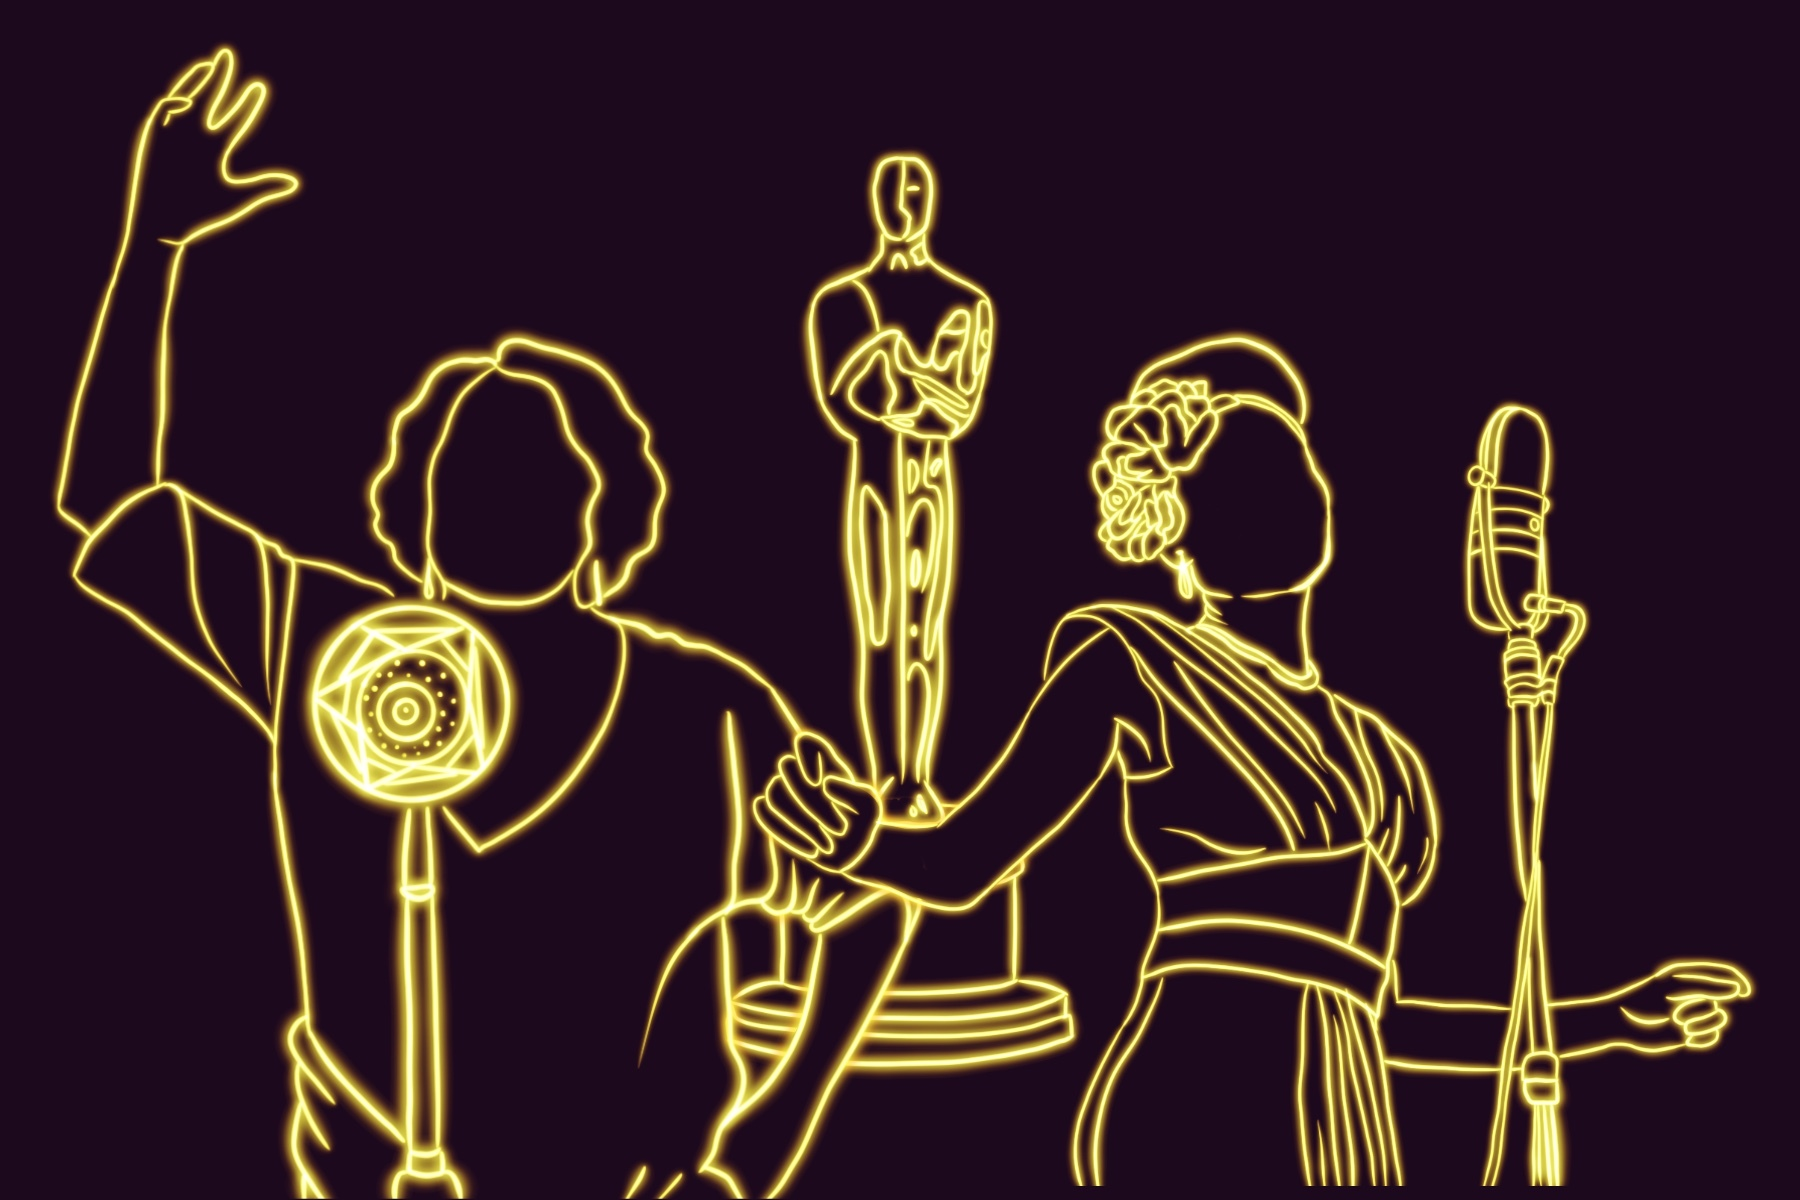 An illustration of people at the Oscars in front of an Oscar.